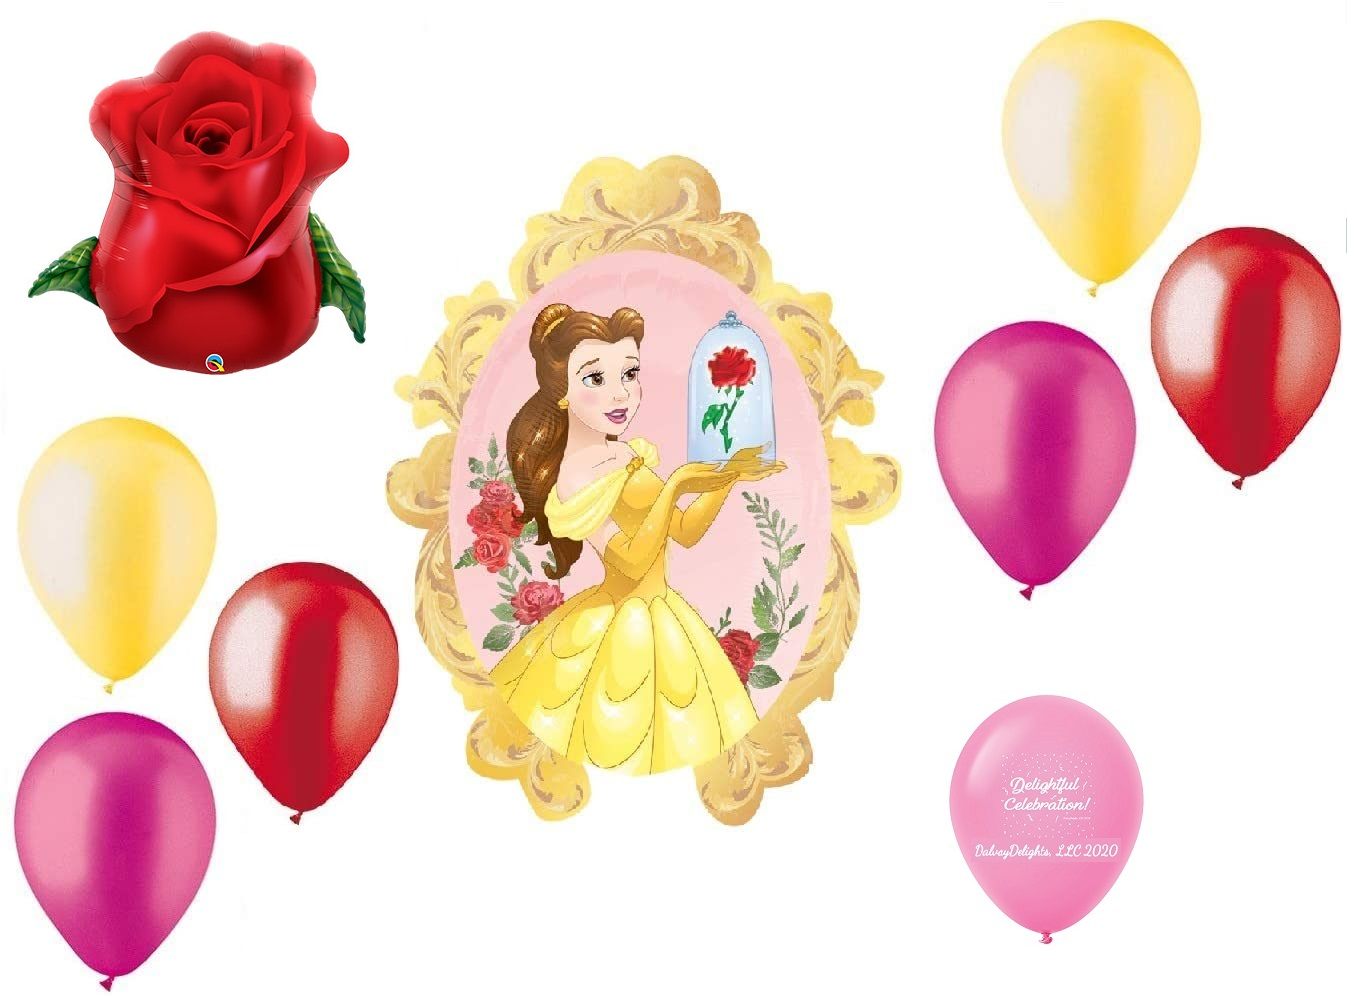 Birthday Card Belle Beauty /& the Beast black Satin Ribbon jeweled rose popped up